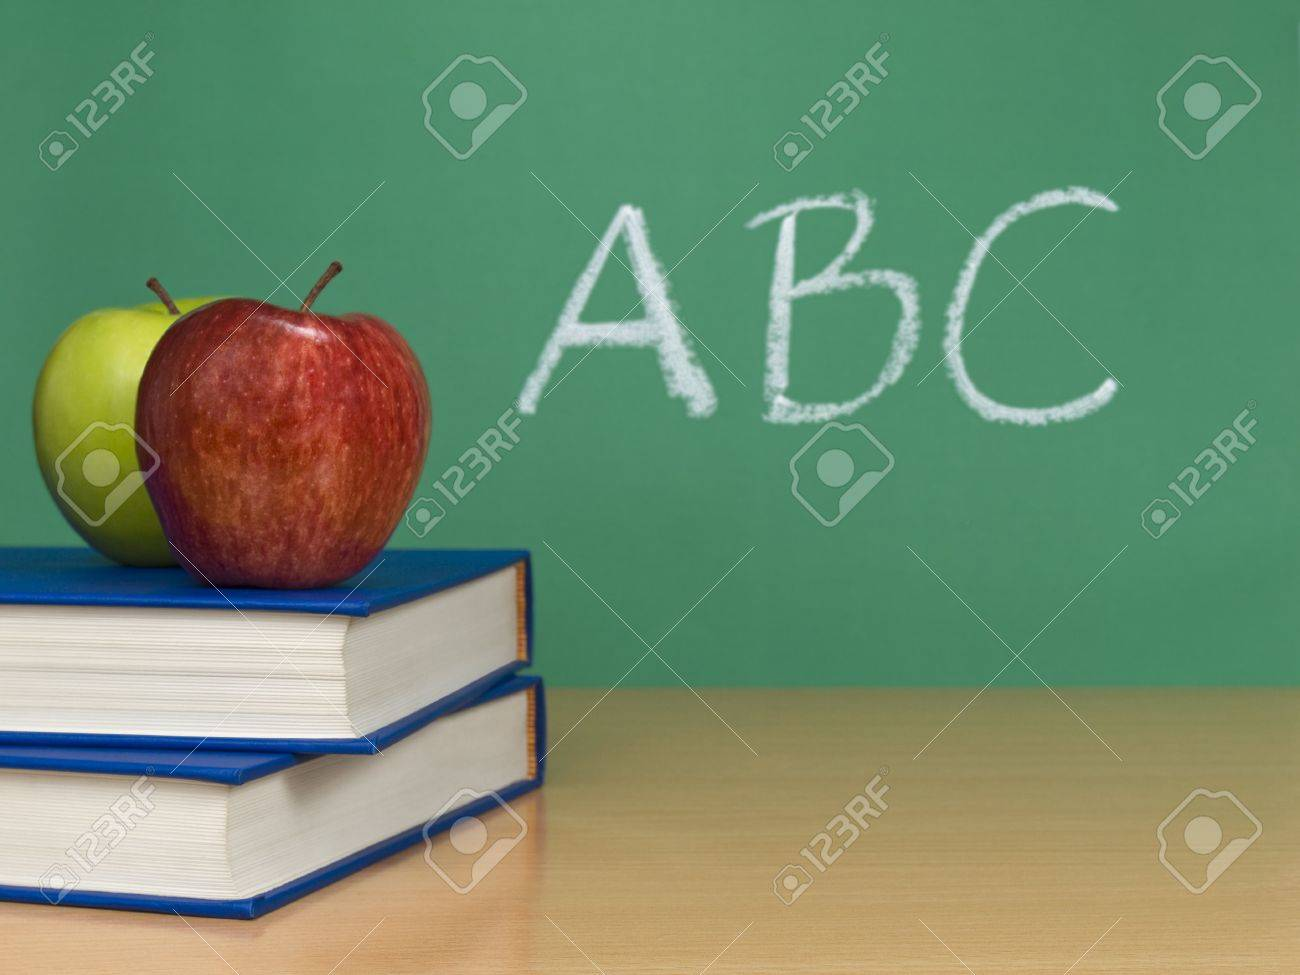 ABC written on a chalkboard. Two apples over books on the foreground. Stock Photo - 5322453